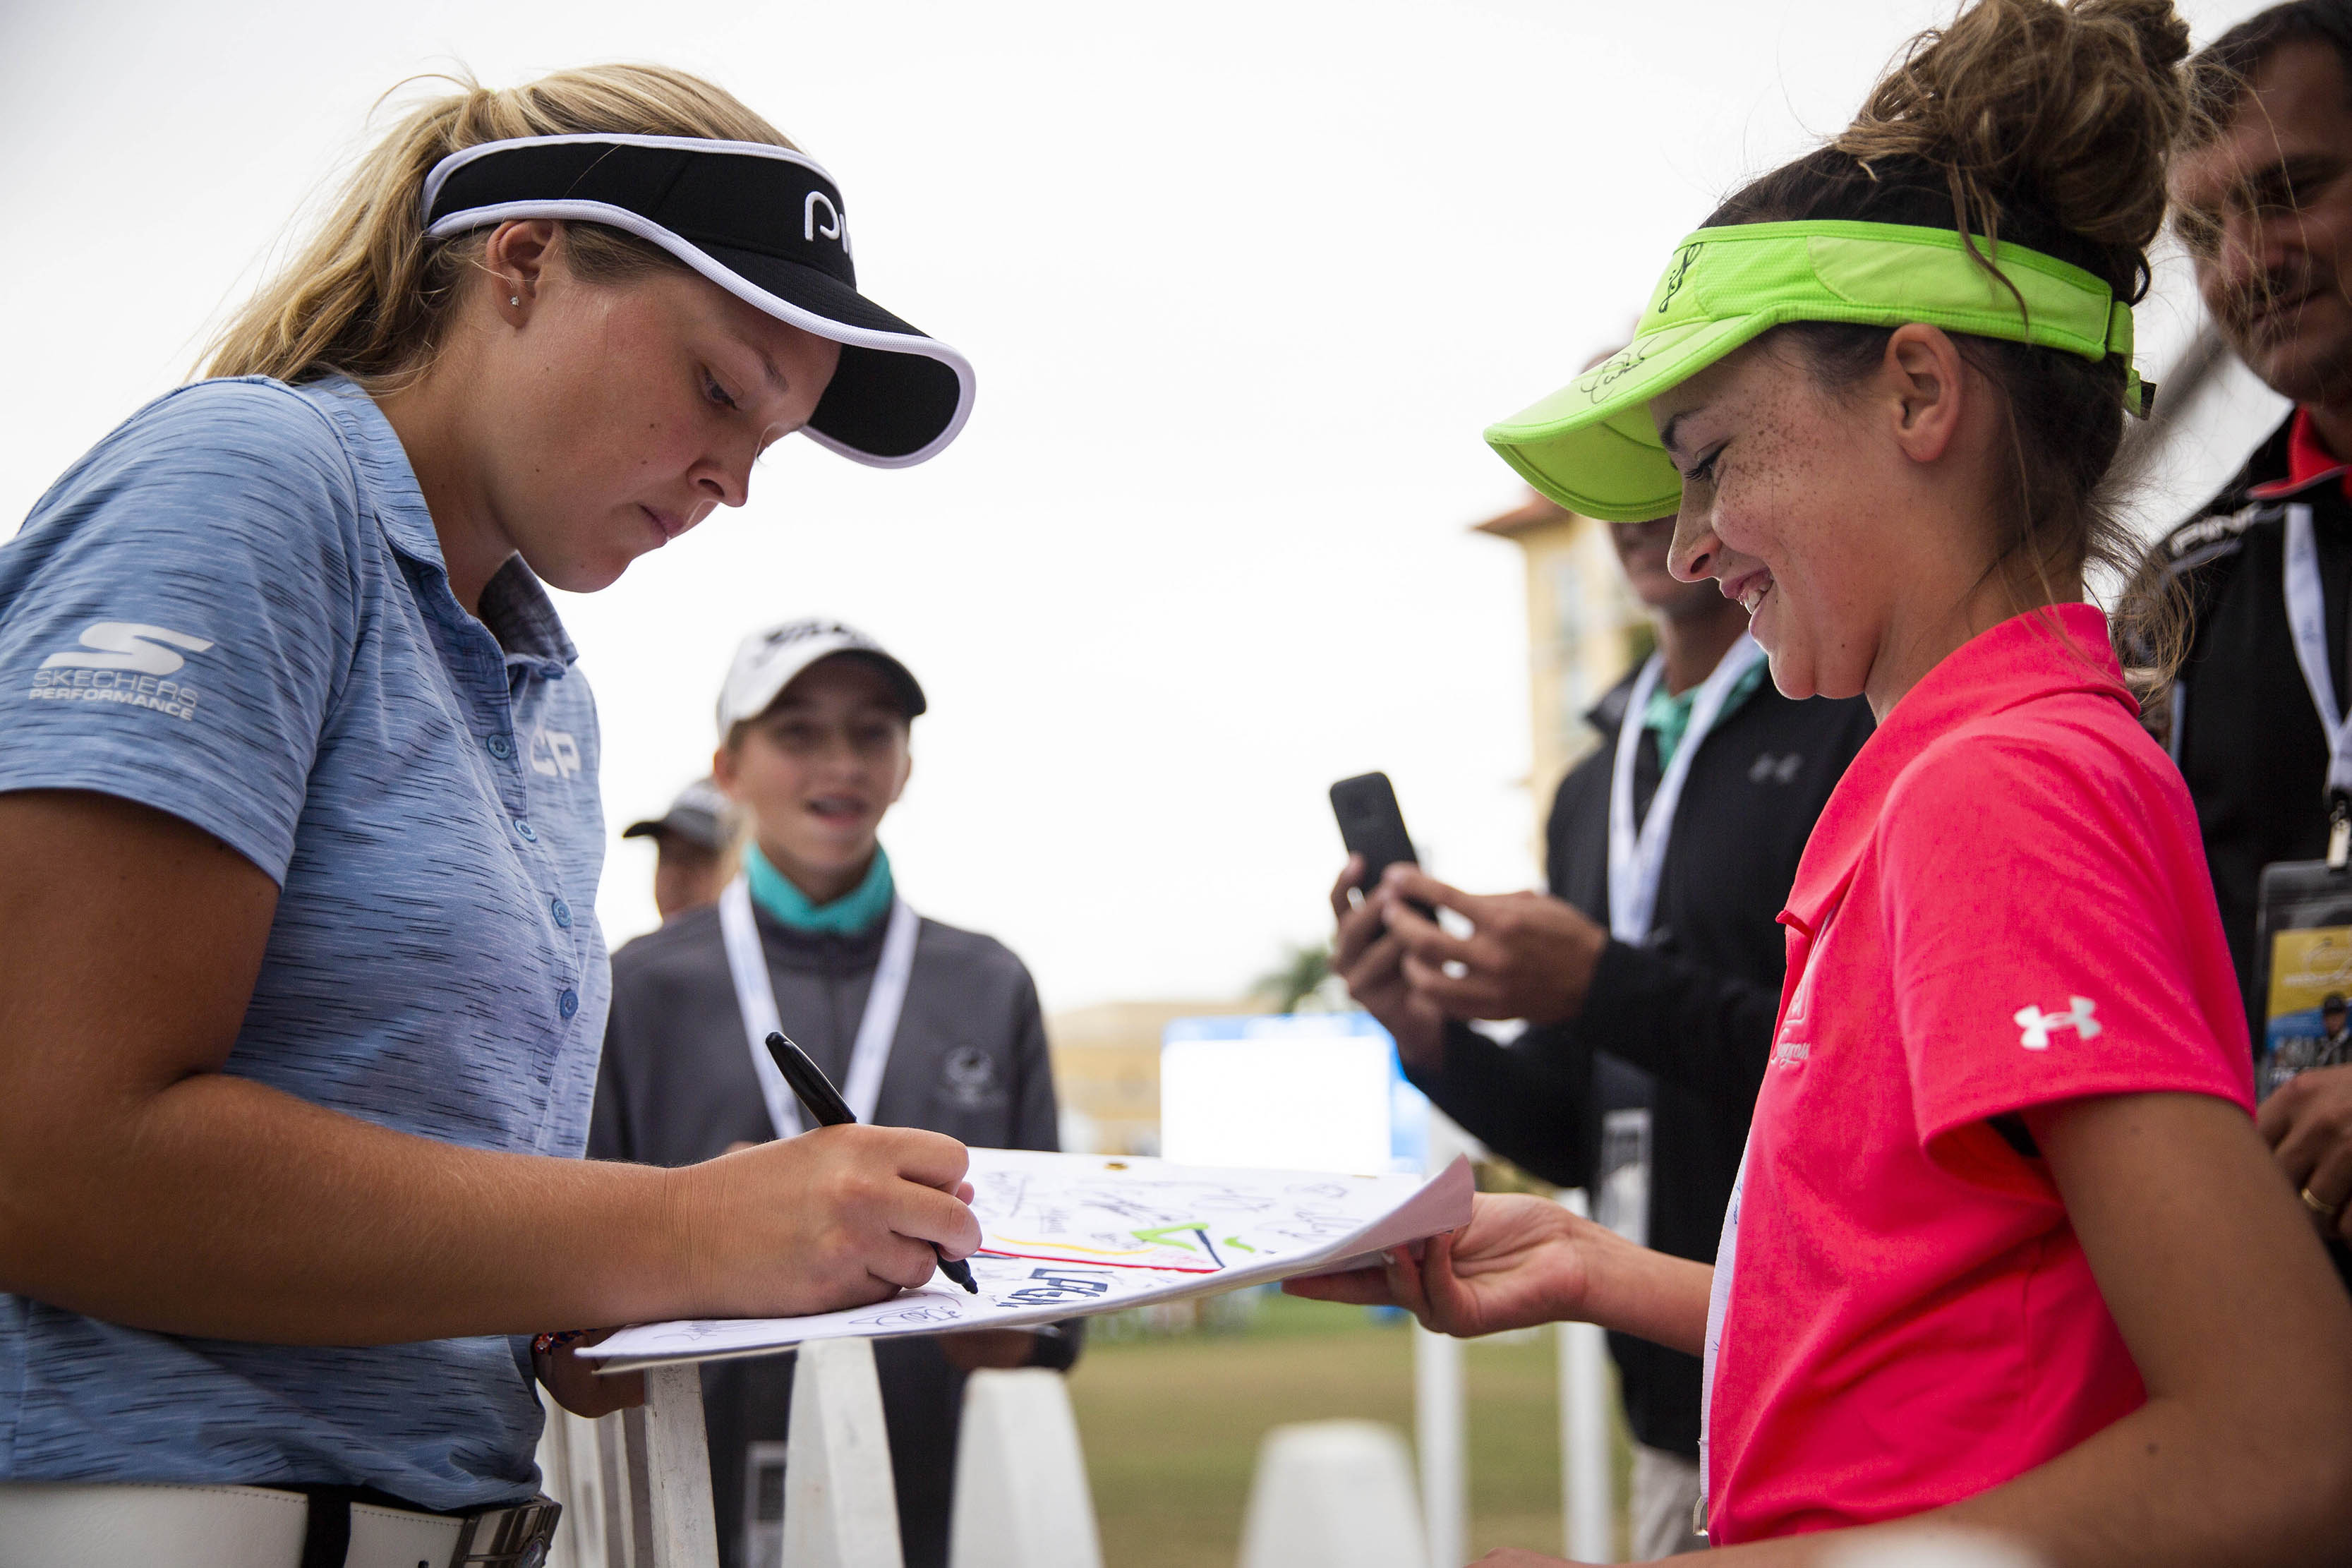 Nov 15, 2018; Naples, FL, USA; Brooke Henderson of Canada signs a flag for Gracie Grant, 12, of Destin, during the CME Group Tour Championship, the final event of the LPGA Tour, on Thursday, November 15, 2018, at Tiburon Golf Club in Naples. Mandatory Credit: Alex Driehaus/Naples Daily News-USA TODAY NETWORK